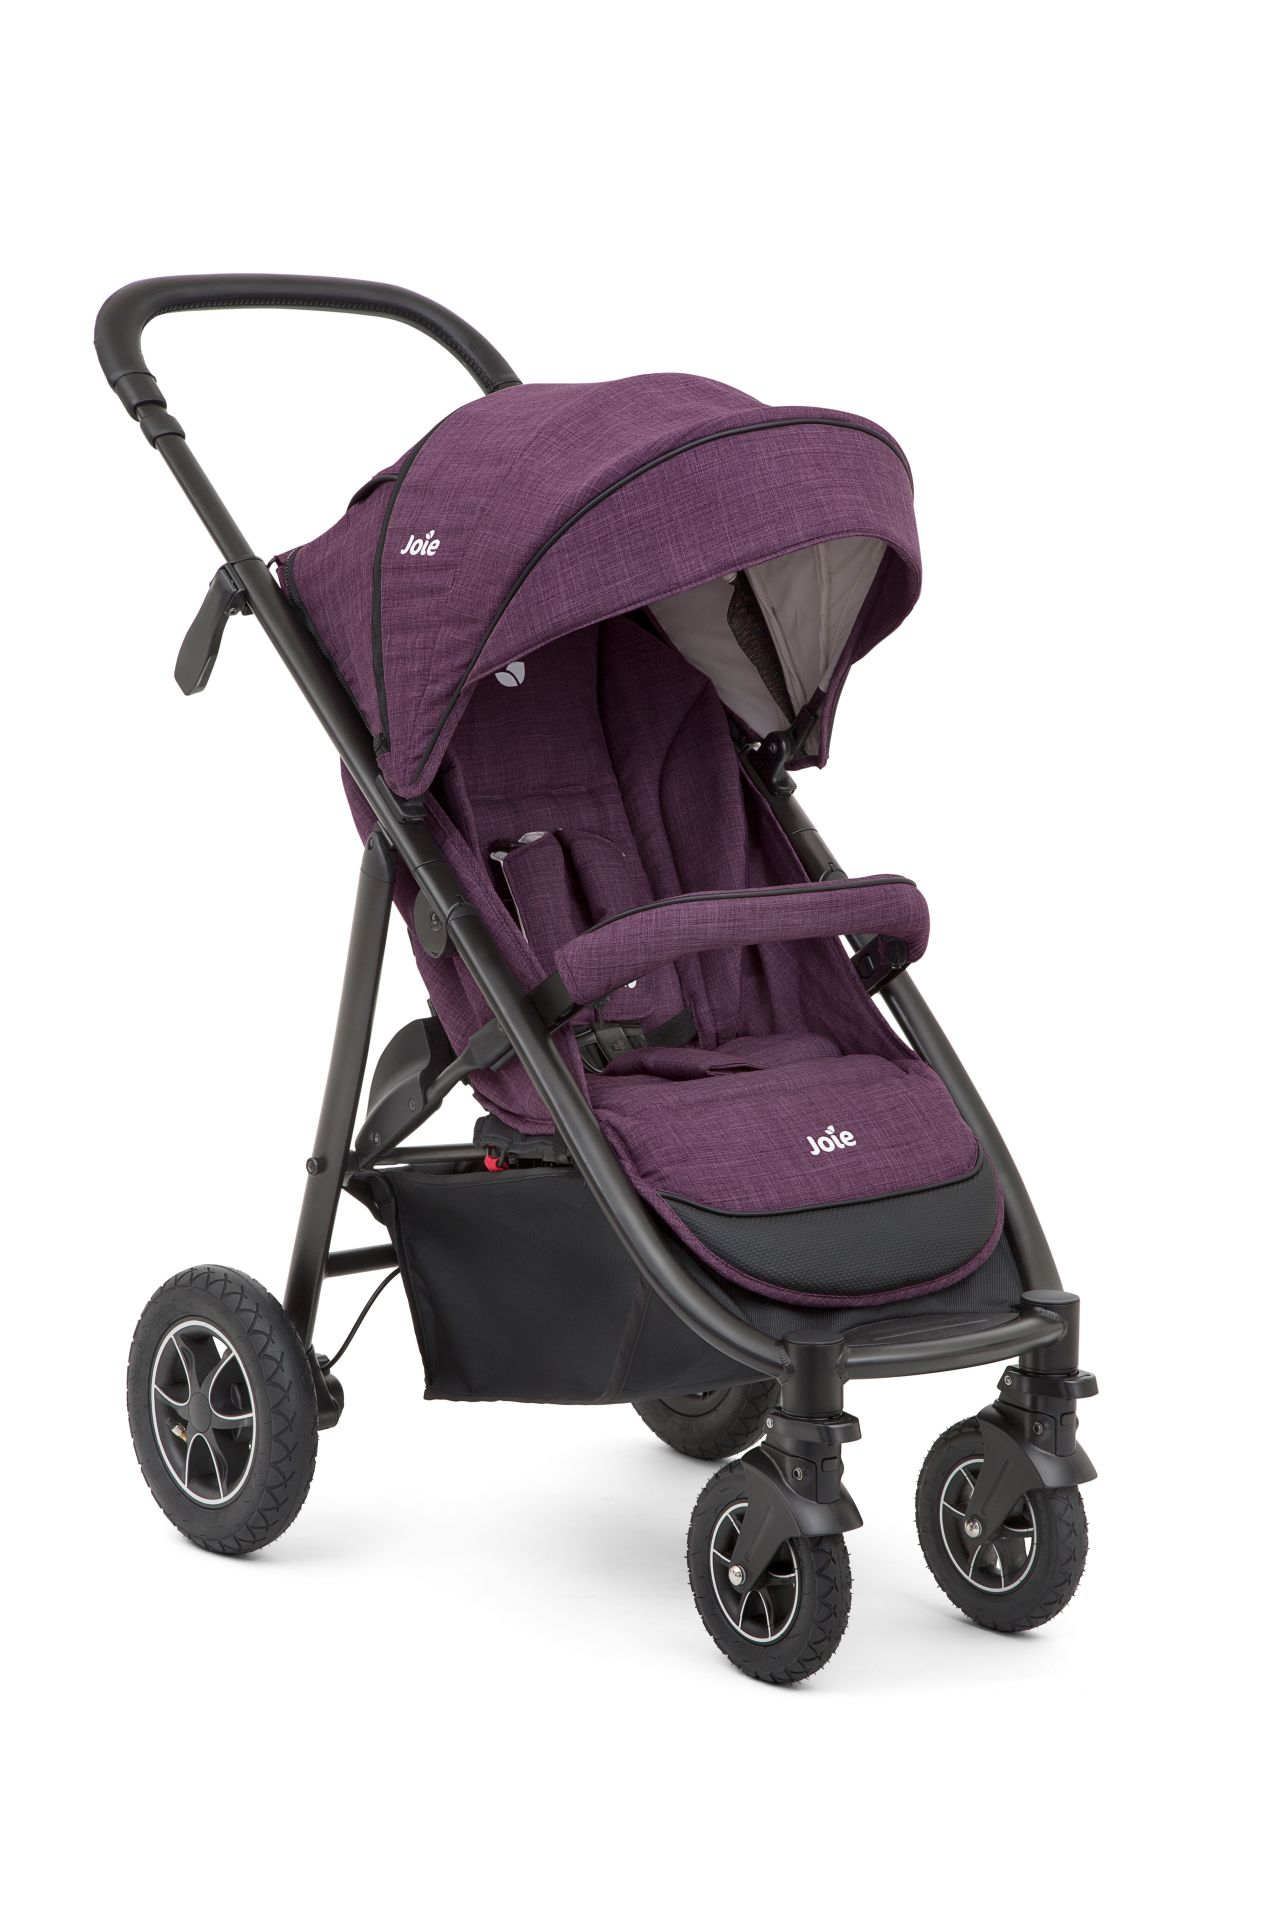 Joie Buggy mytrax™ 2018 Lilac - Buy at kidsroom | Strollers